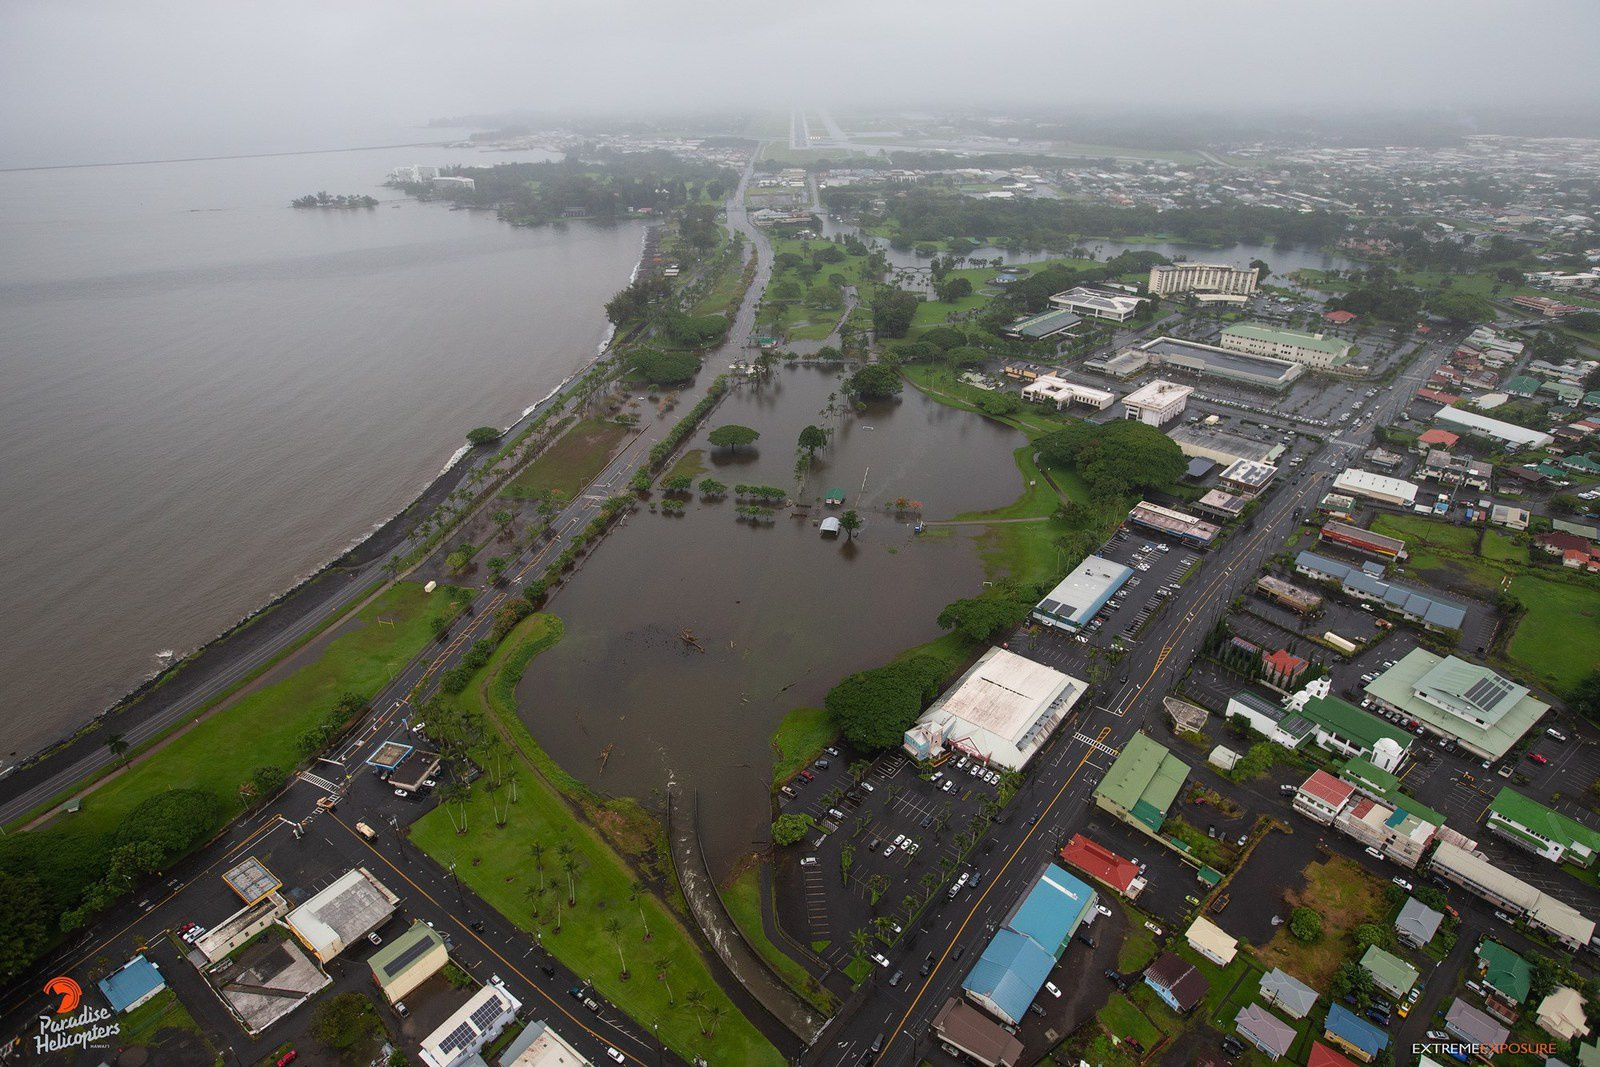 Hawaii - inondations sur Hilo après le passage de Lane - photo Paradise Helicopters 26.08.2018